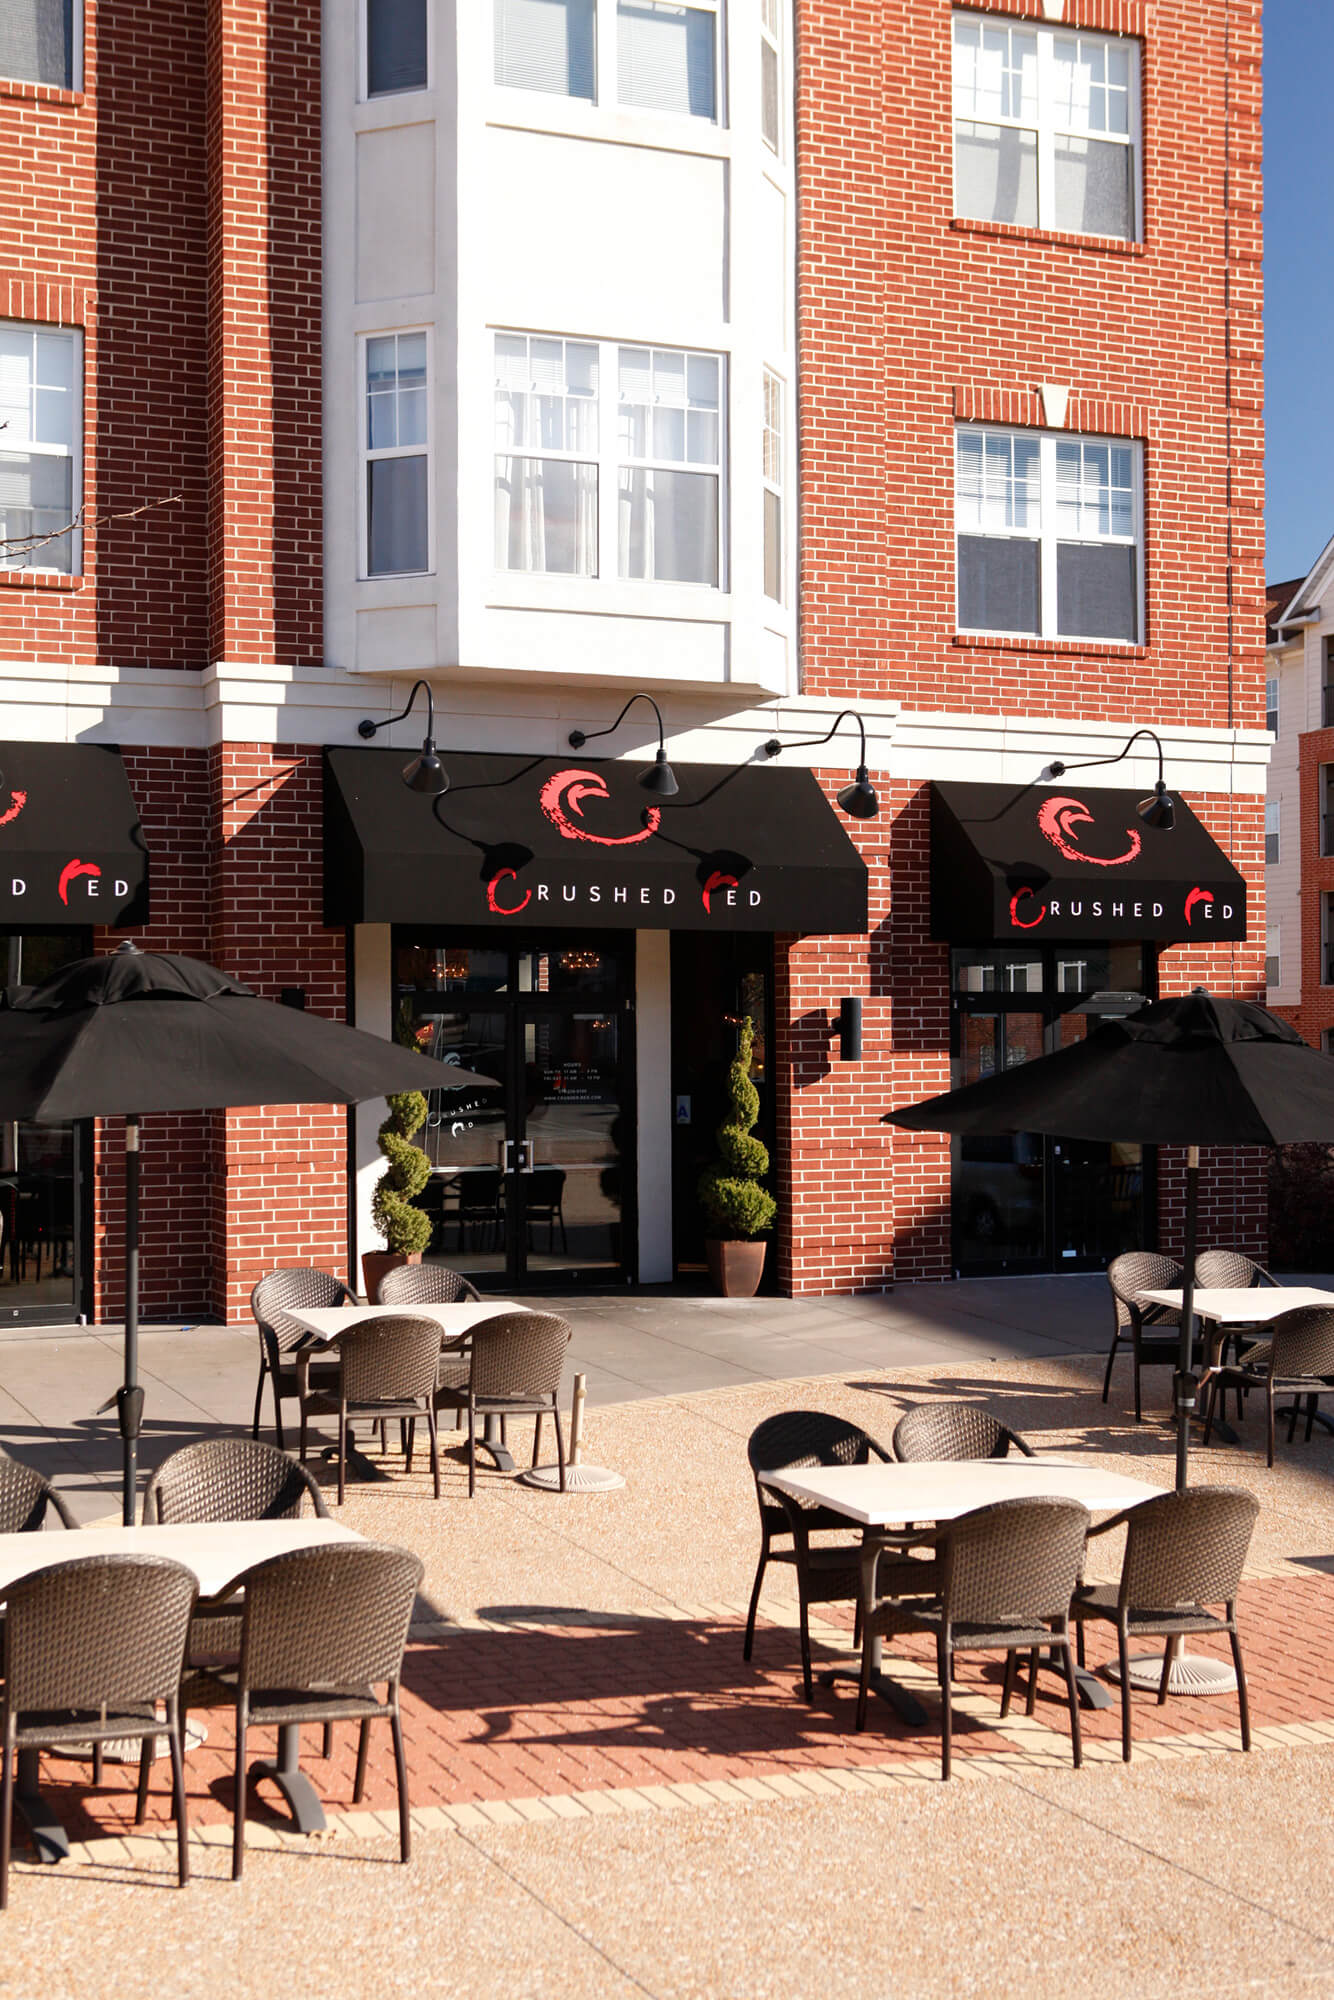 Fixed frame awnings with SGS logos and black umbrellas outside a restaurant